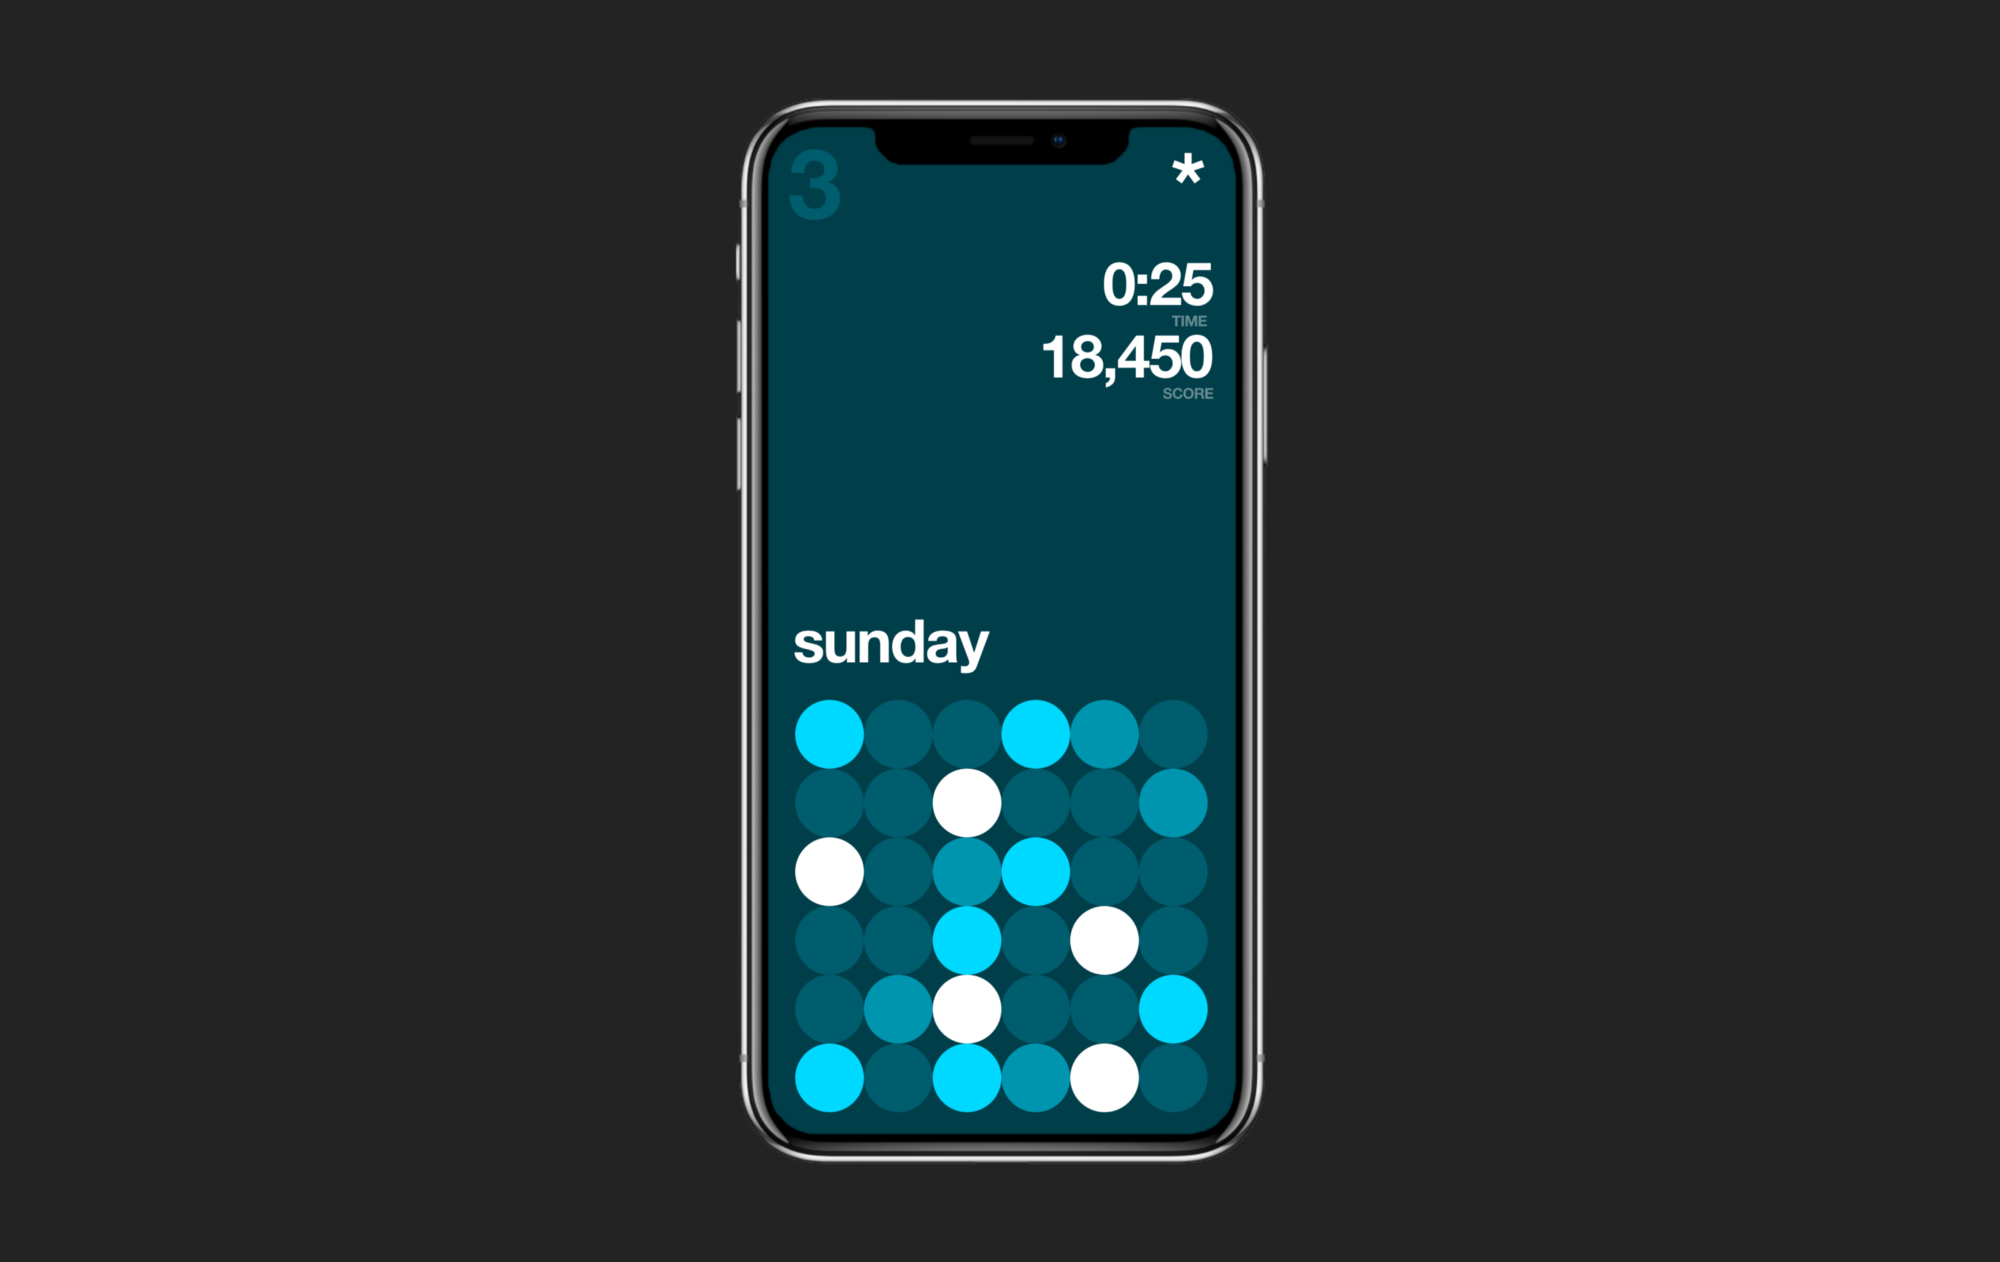 Iphone x user interface game design new ux pattern pro rounded corners full screen cropped for Home design game apps for iphone